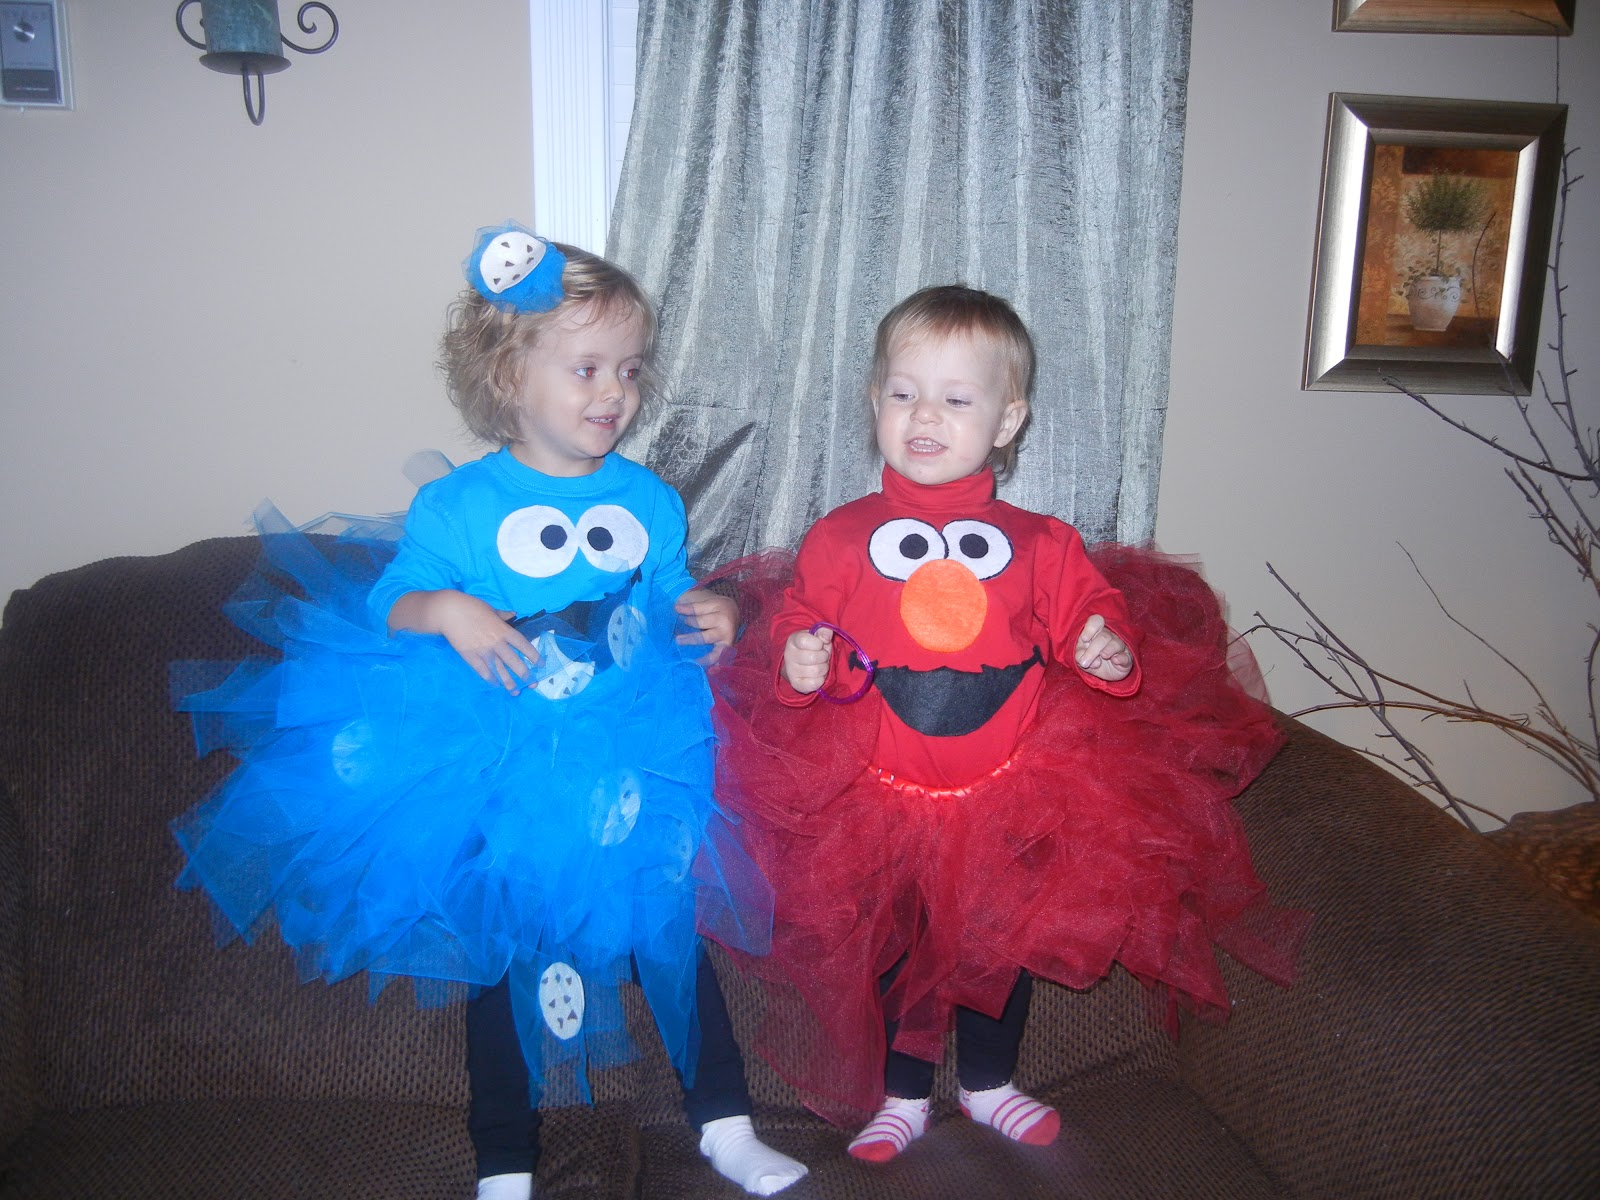 lilo's confections: cookie monster & elmo costumes